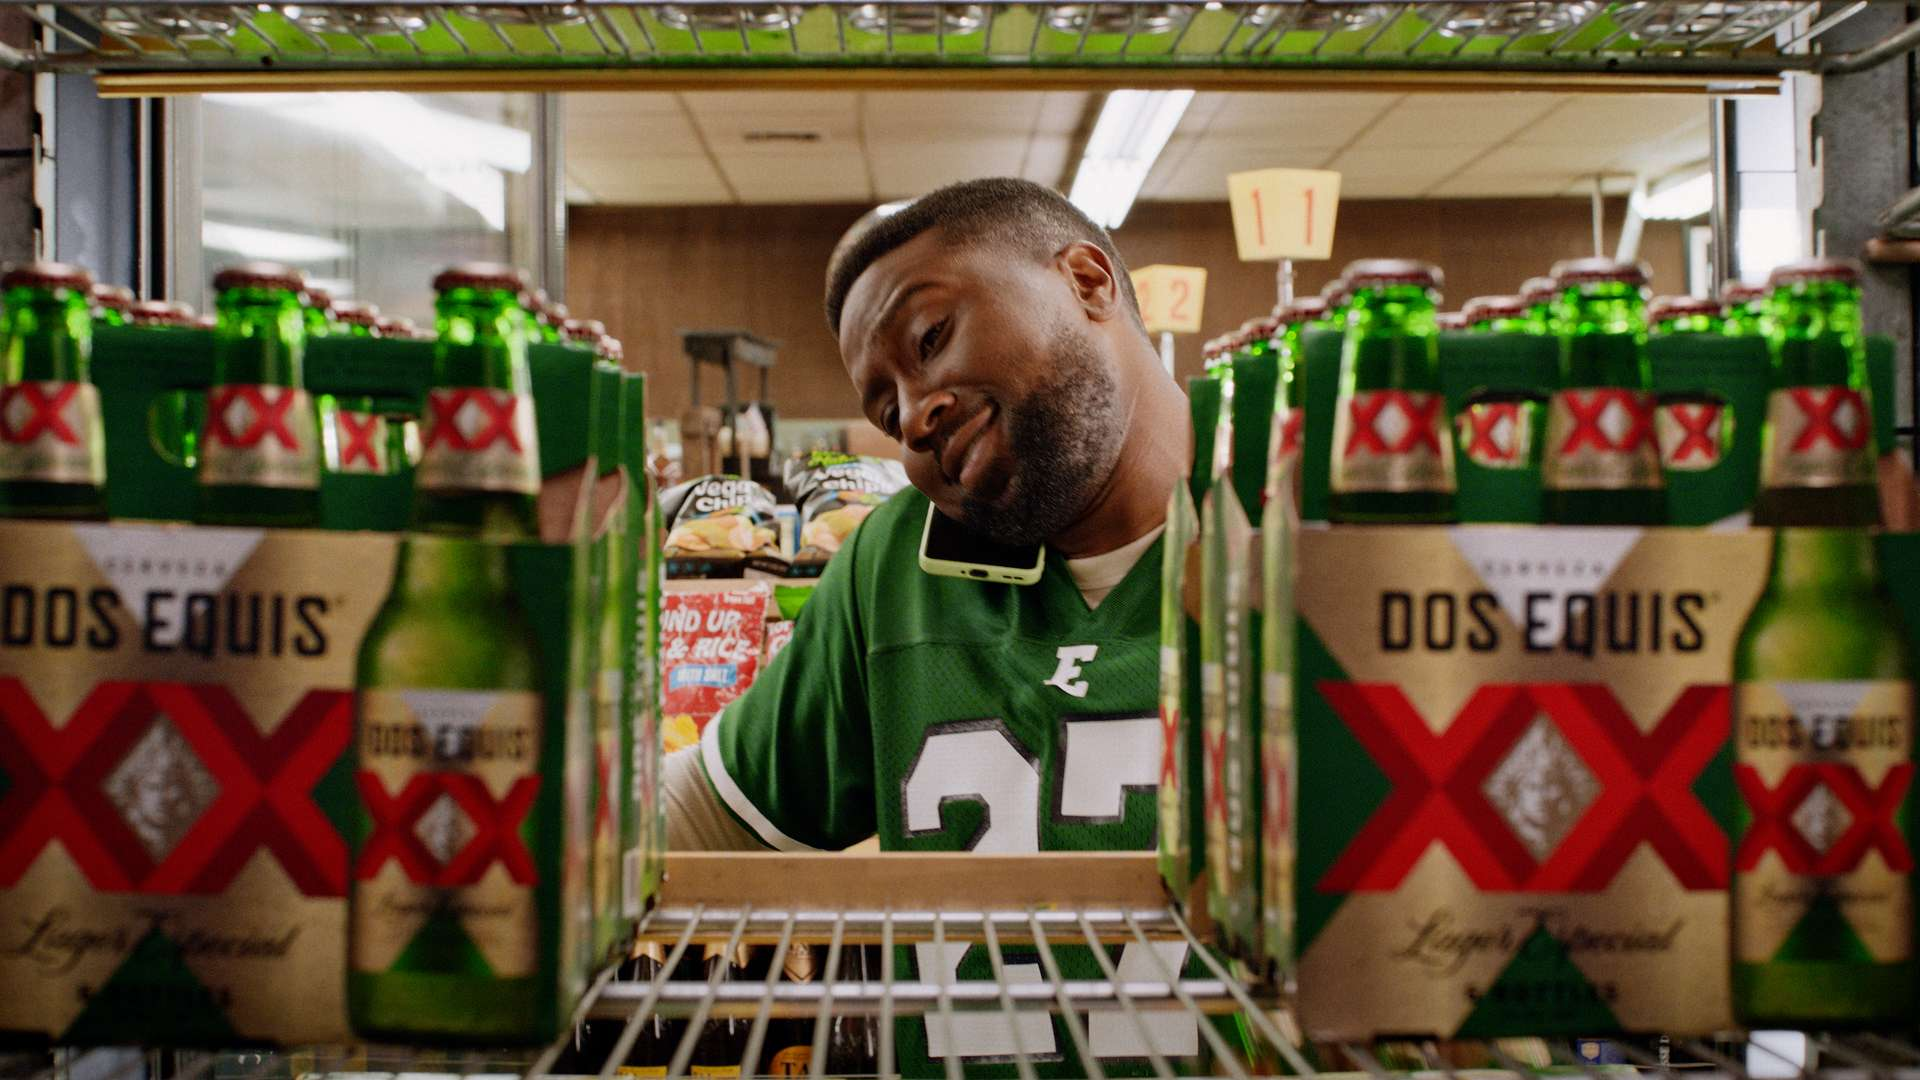 Dos Equis college football commercial still shot